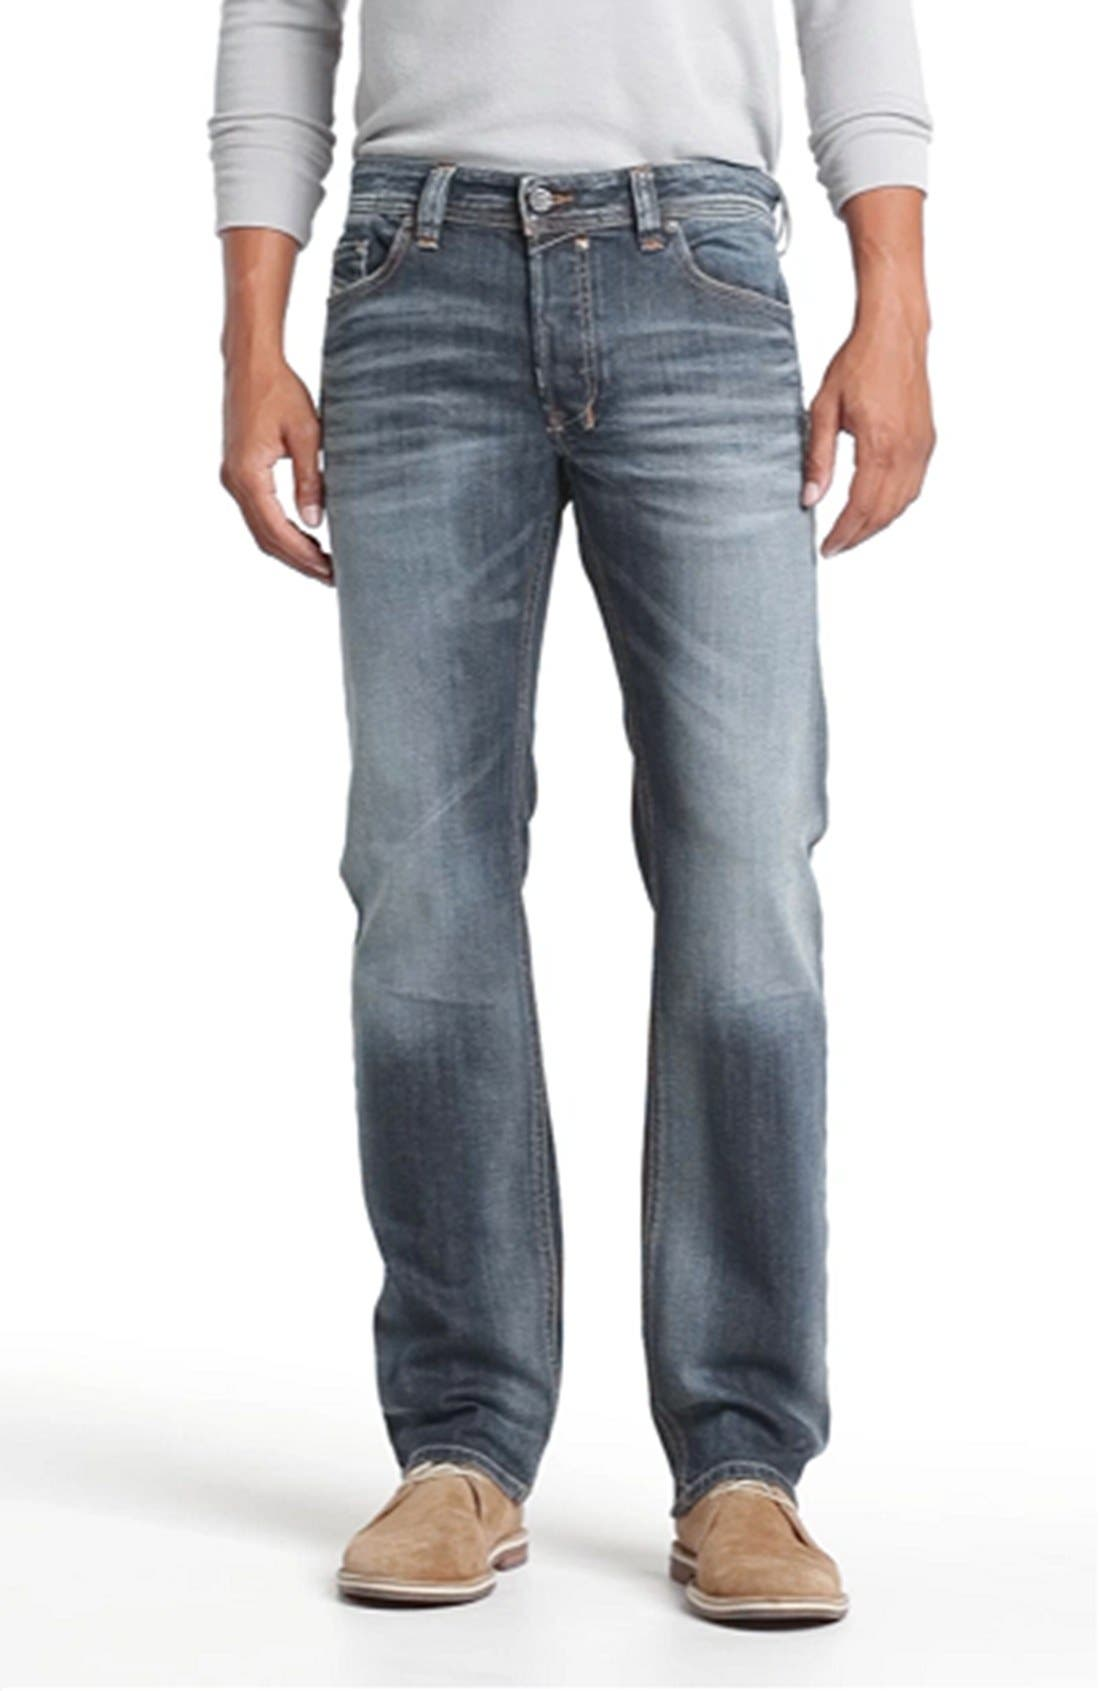 Safado Slim Fit Jeans,                             Alternate thumbnail 2, color,                             400